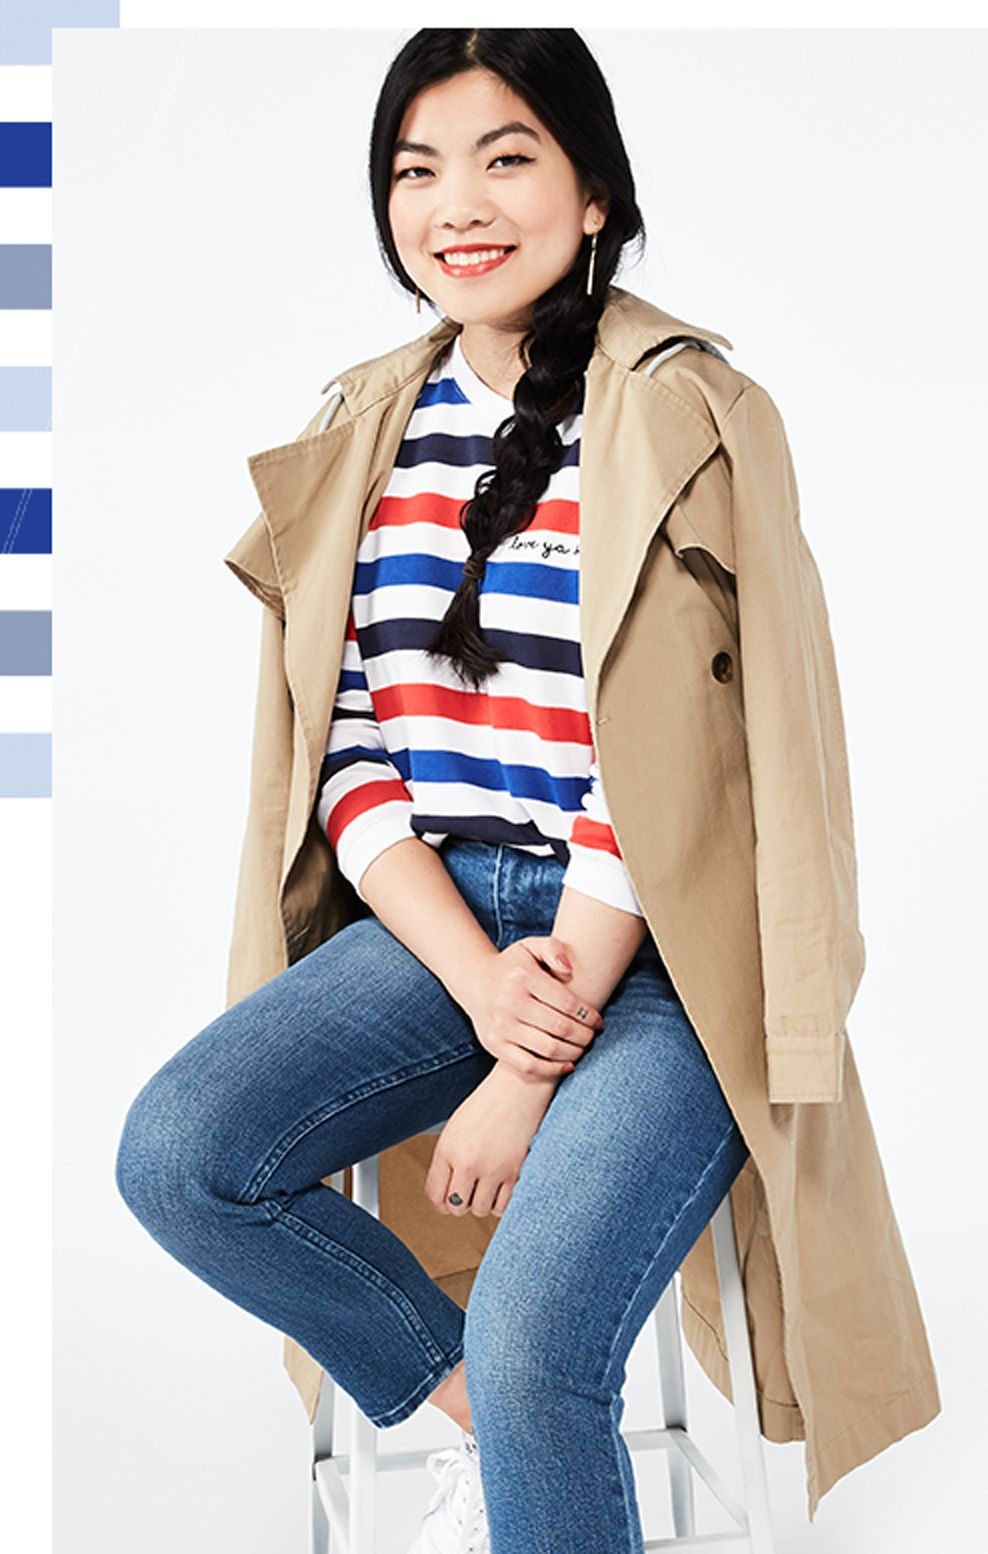 woman (Carrie) sitting on a stool in jeans and a striped shirt with a trenchcoat over her shoulders